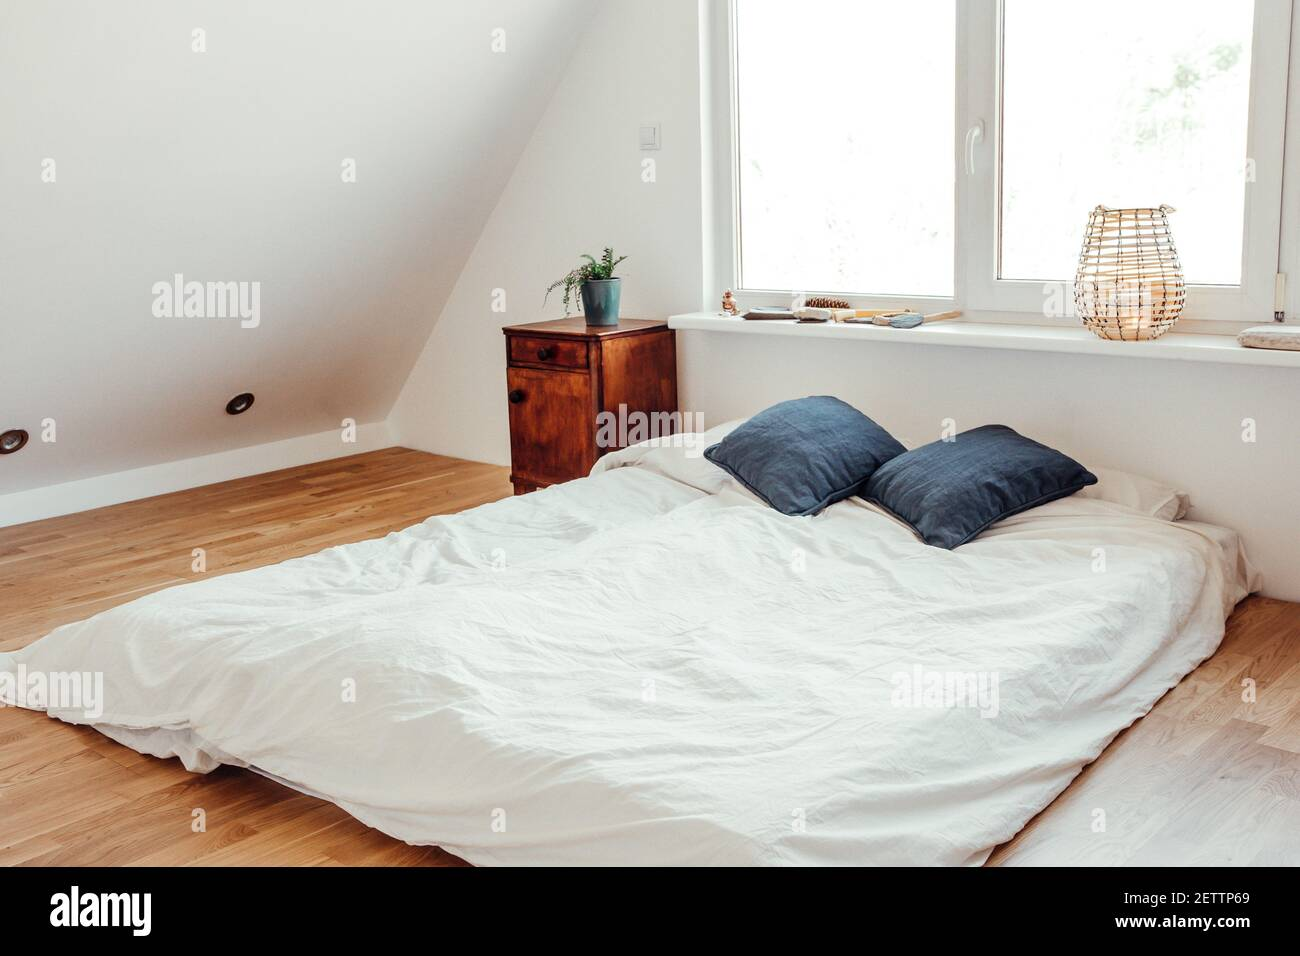 Mattress On Floor High Resolution Stock Photography And Images Alamy